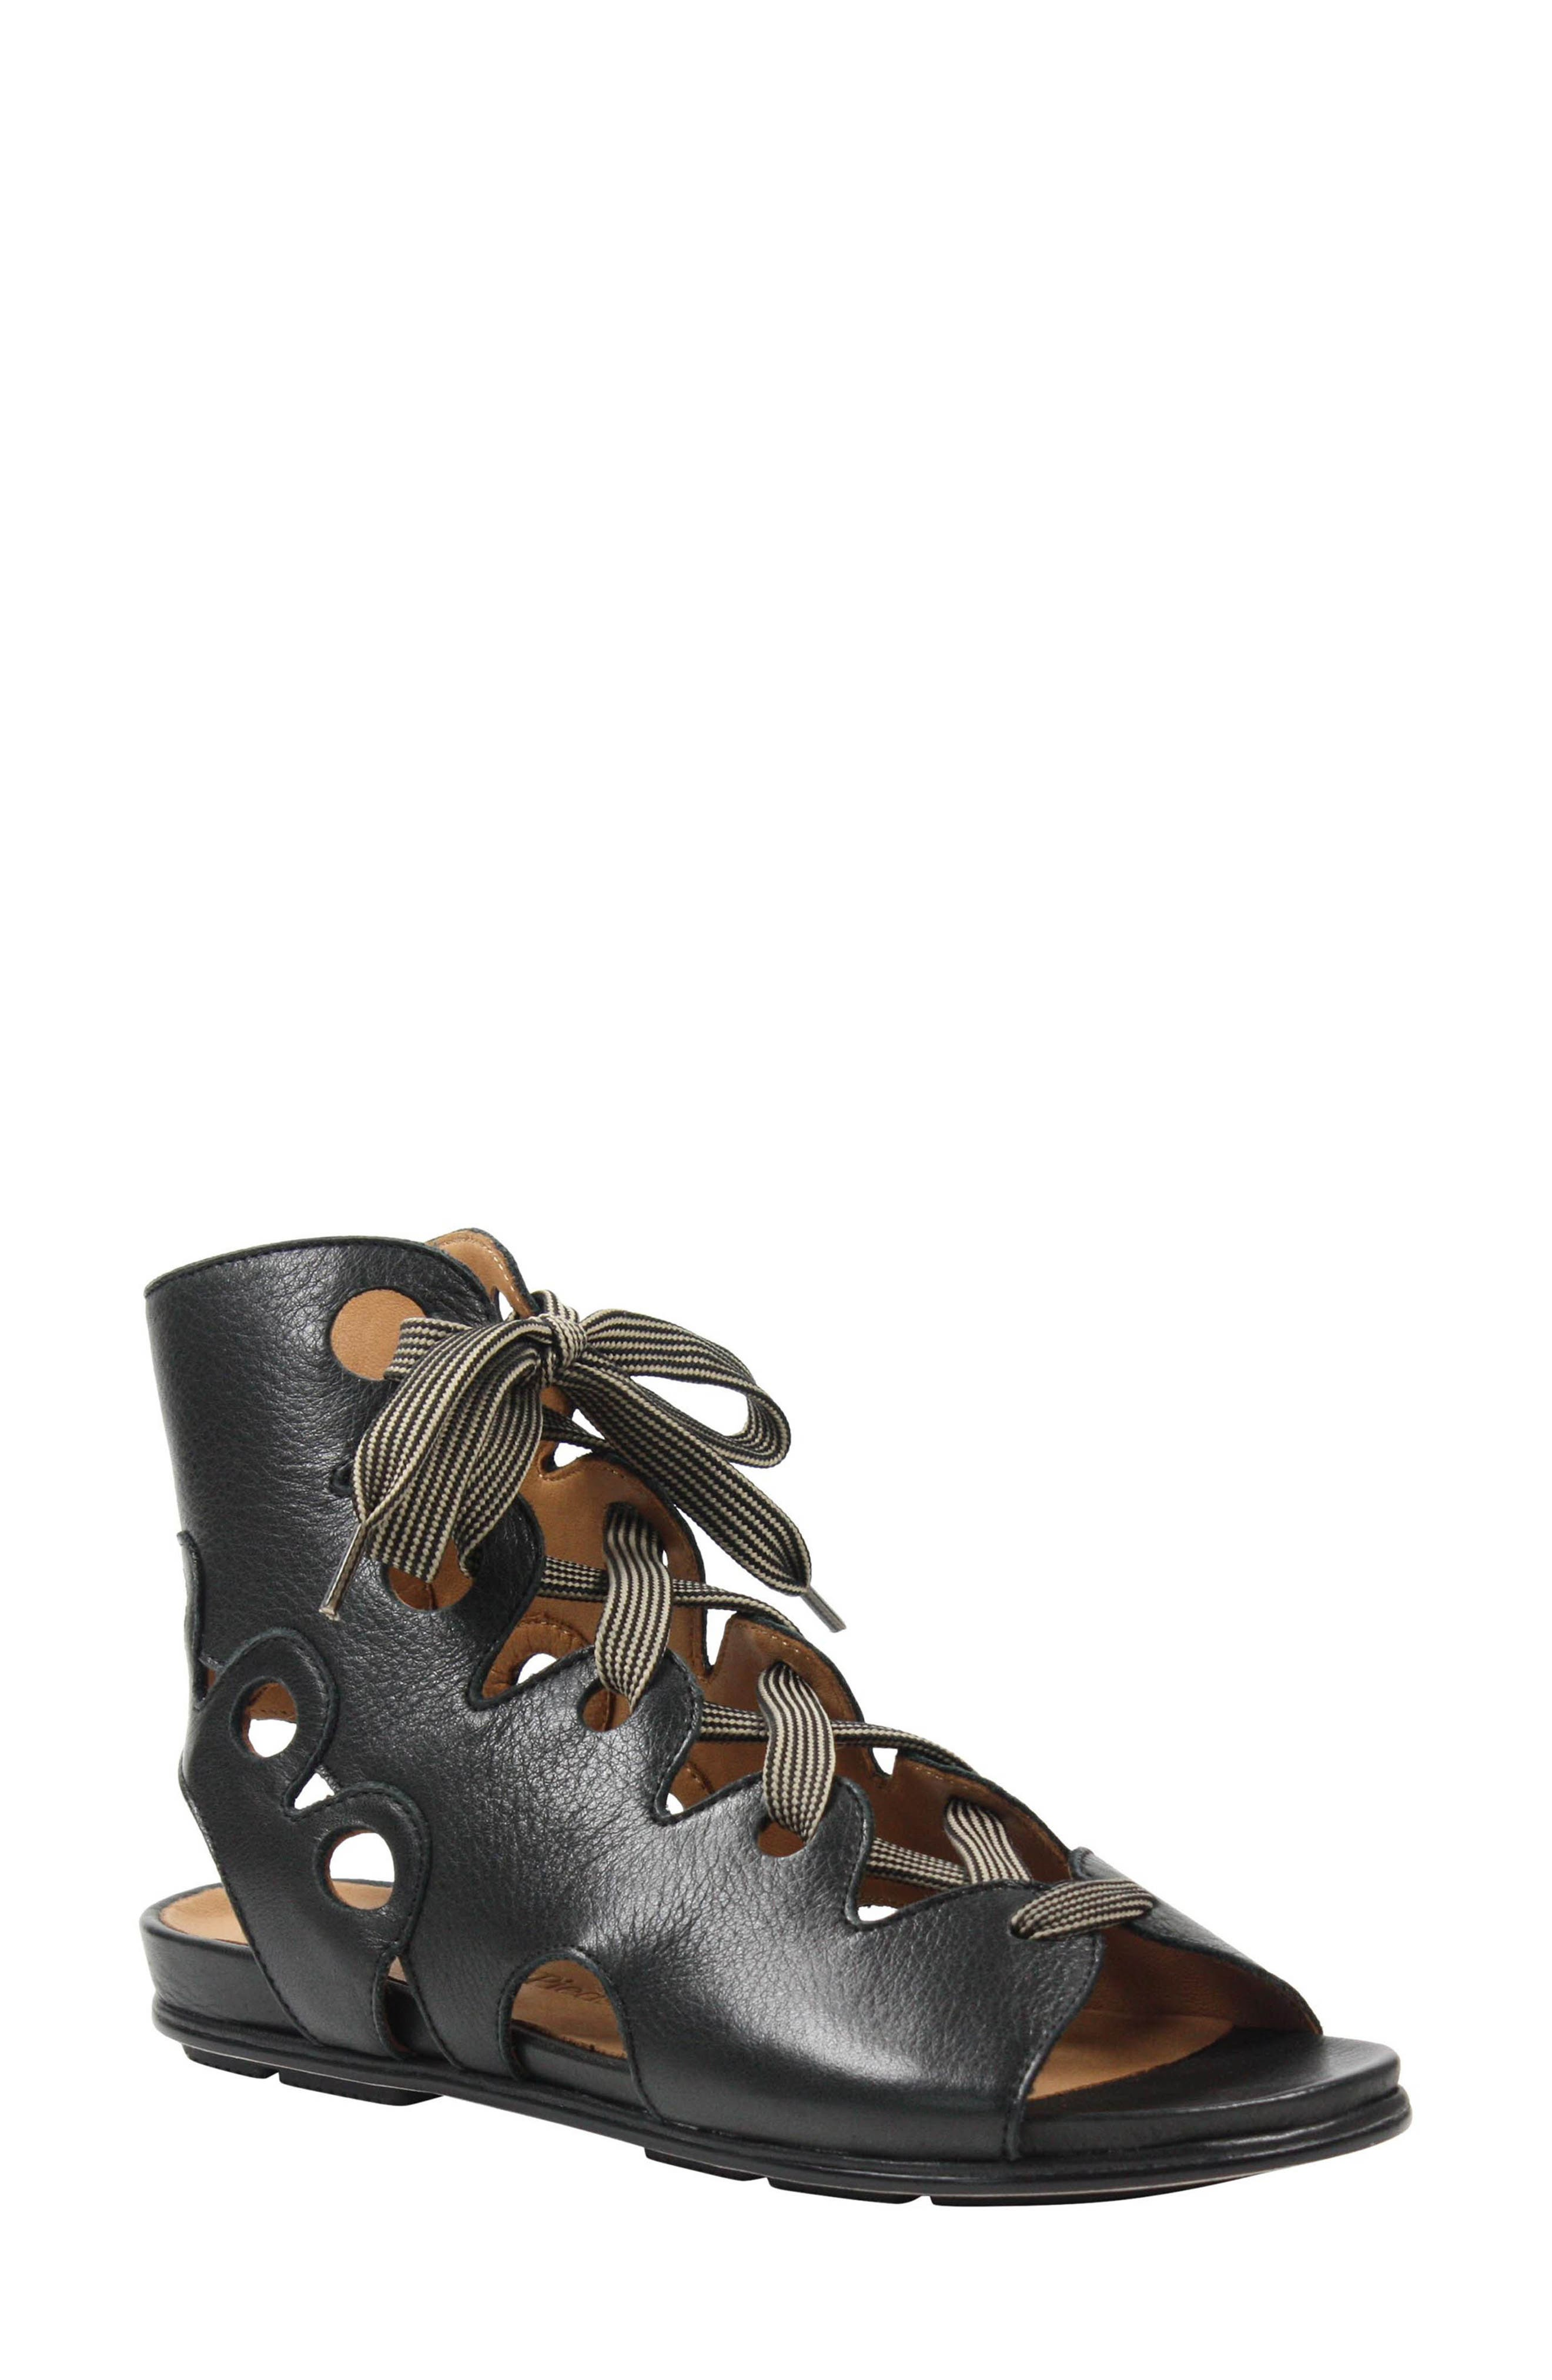 L'AMOUR DES PIEDS Dionisa Sandal, Main, color, BLACK LEATHER